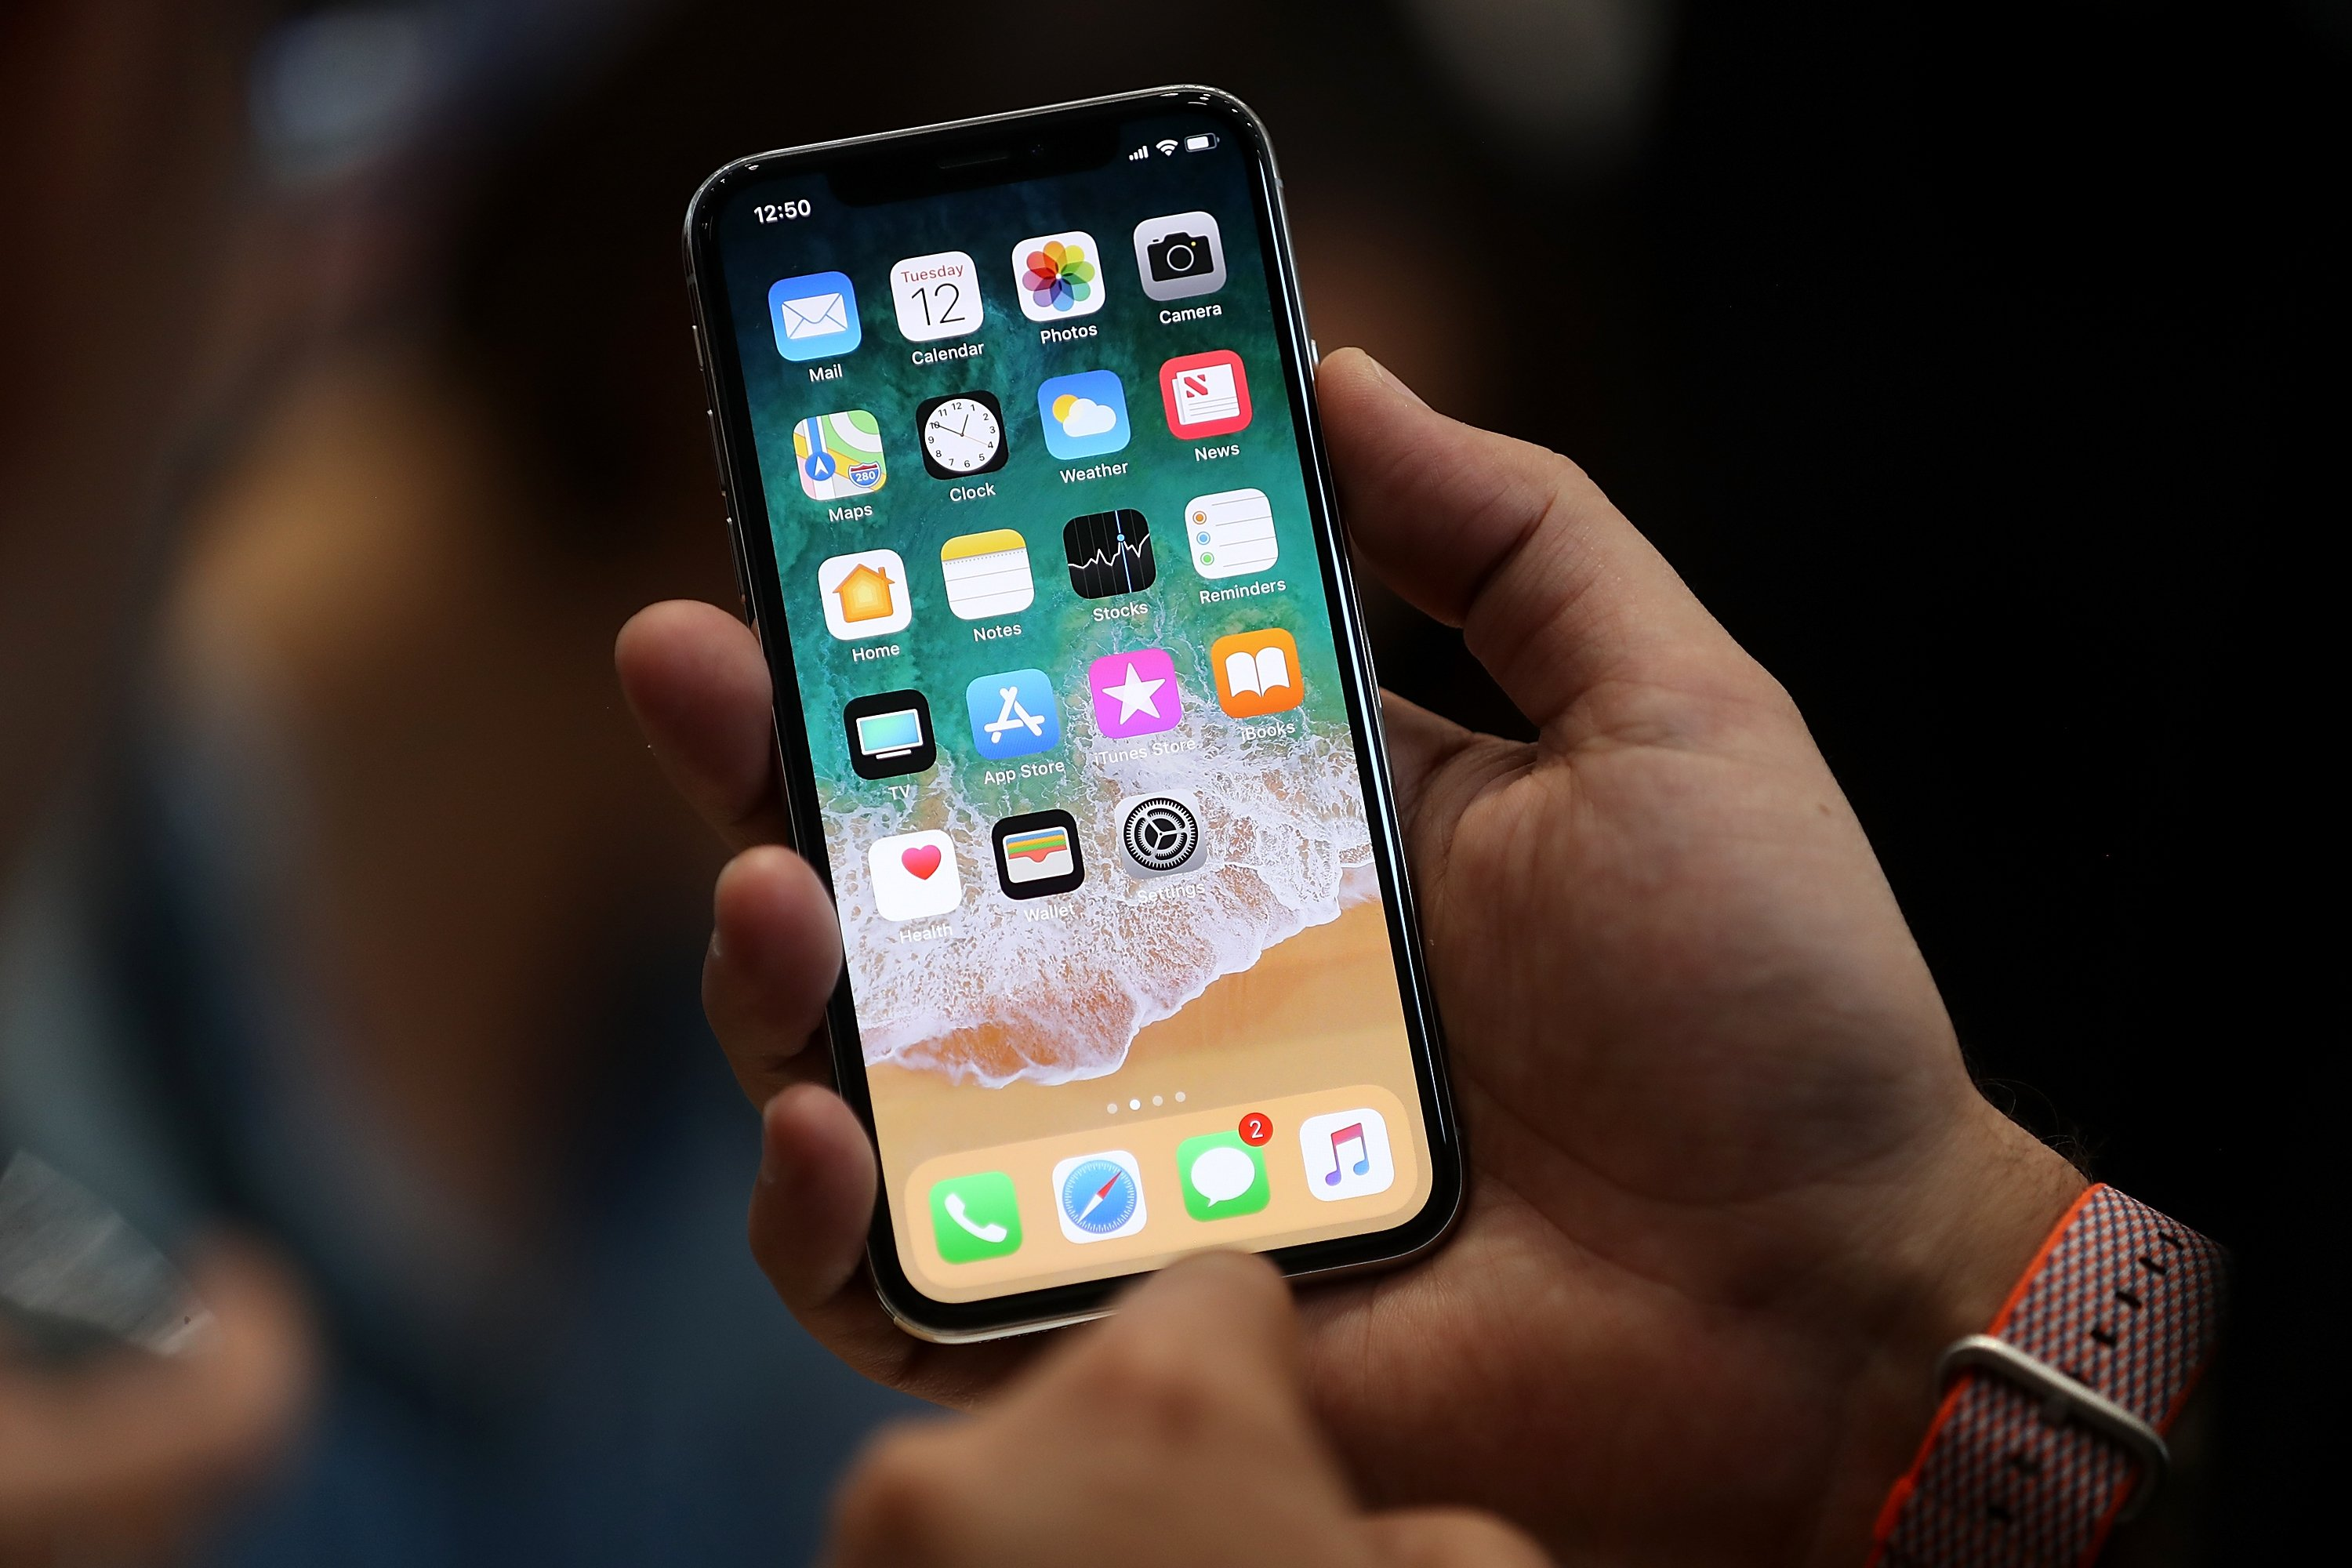 How to set own ringtone on iphone x